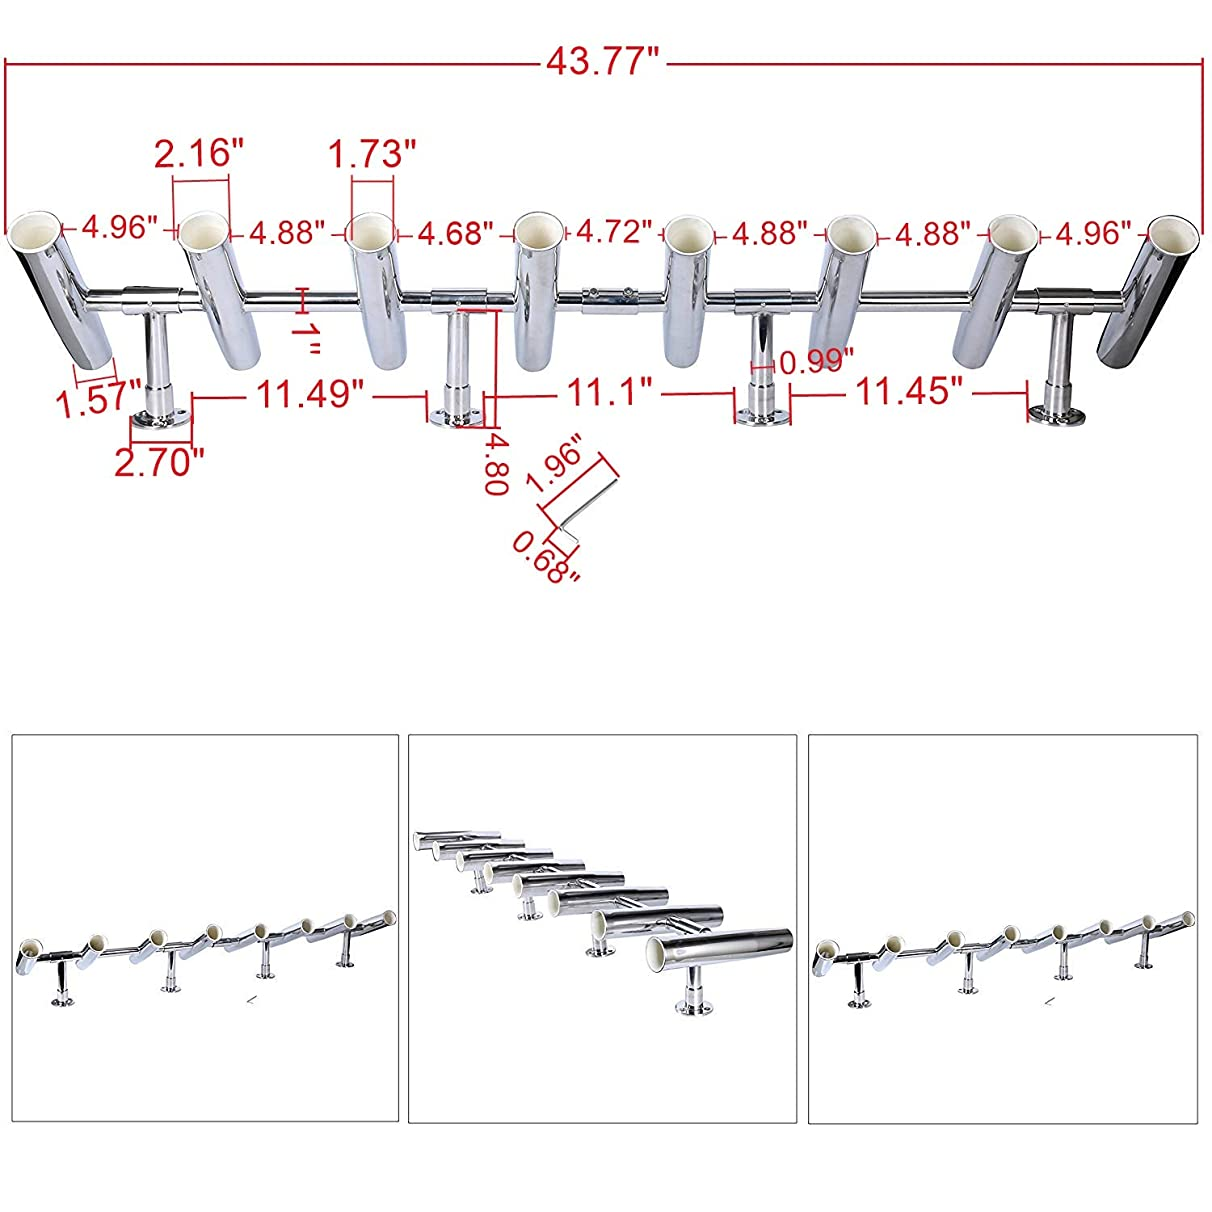 Amarine-made 8 Tube Adjustable Stainless Rocket Launcher Rod Holders, Can Be Rotated 360 Deg